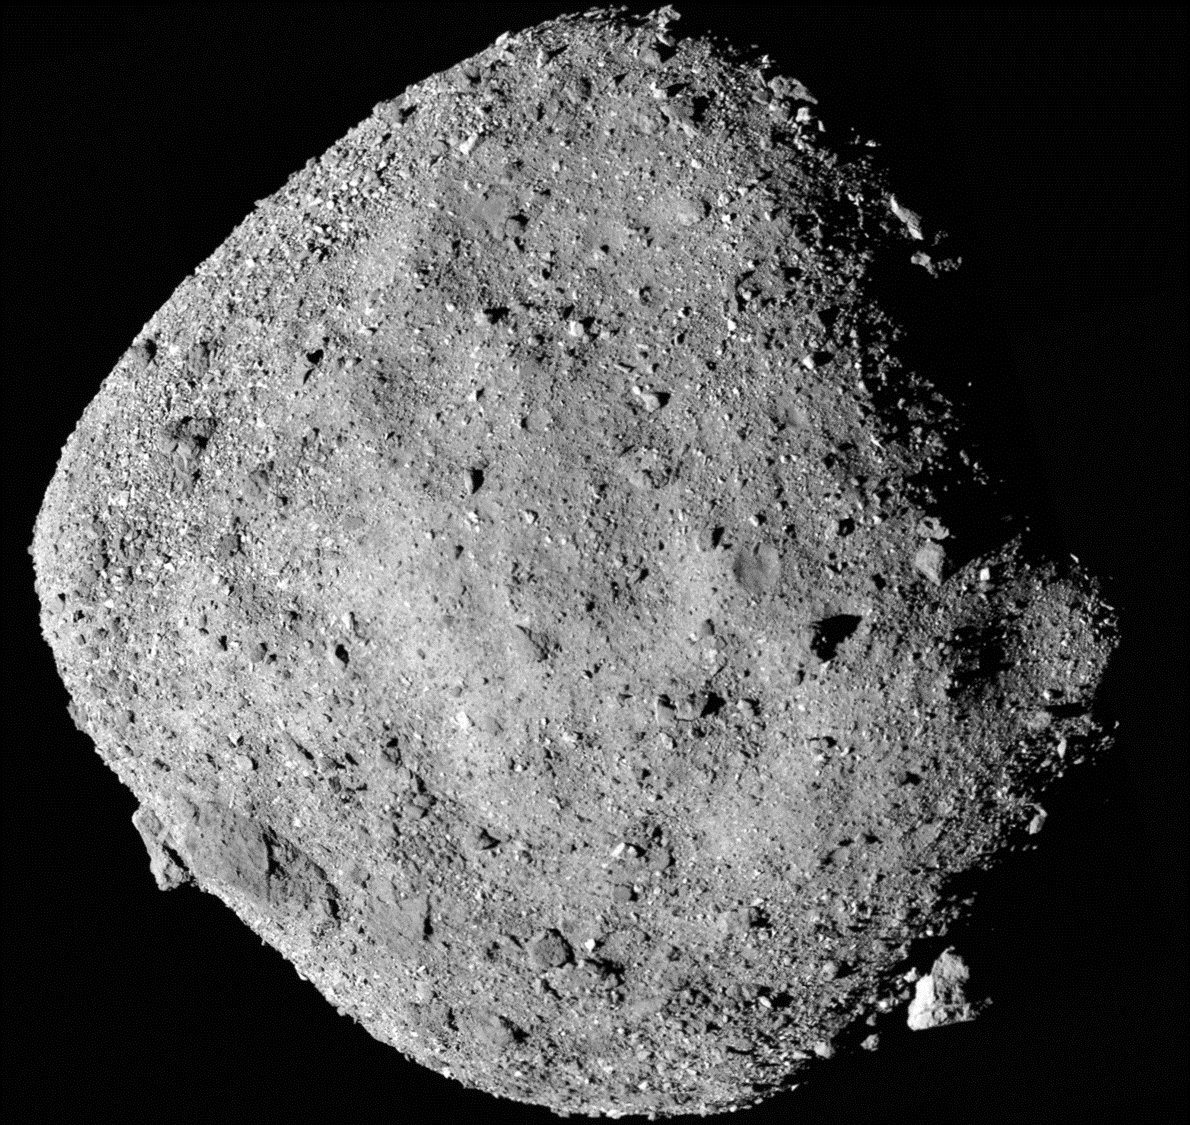 This mosaic image composed of 12 PolyCam images collected on Dec. 2, 2018, and provided by NASA shows the asteroid Bennu. NASA's first look at a tiny asteroid shows the space rock is more moist and studded with boulders than originally thought. Scientists on Monday, Dec. 10, released the first morsels of data collected since their spacecraft Osiris-Rex hooked up last week with the asteroid Bennu, which is only about three blocks wide and weighs about 80 million tons (73 million metric tons). Bennu regularly crosses Earth's orbit and will come perilously close to Earth in about 150 years. (NASA/Goddard/University of Arizona via AP)